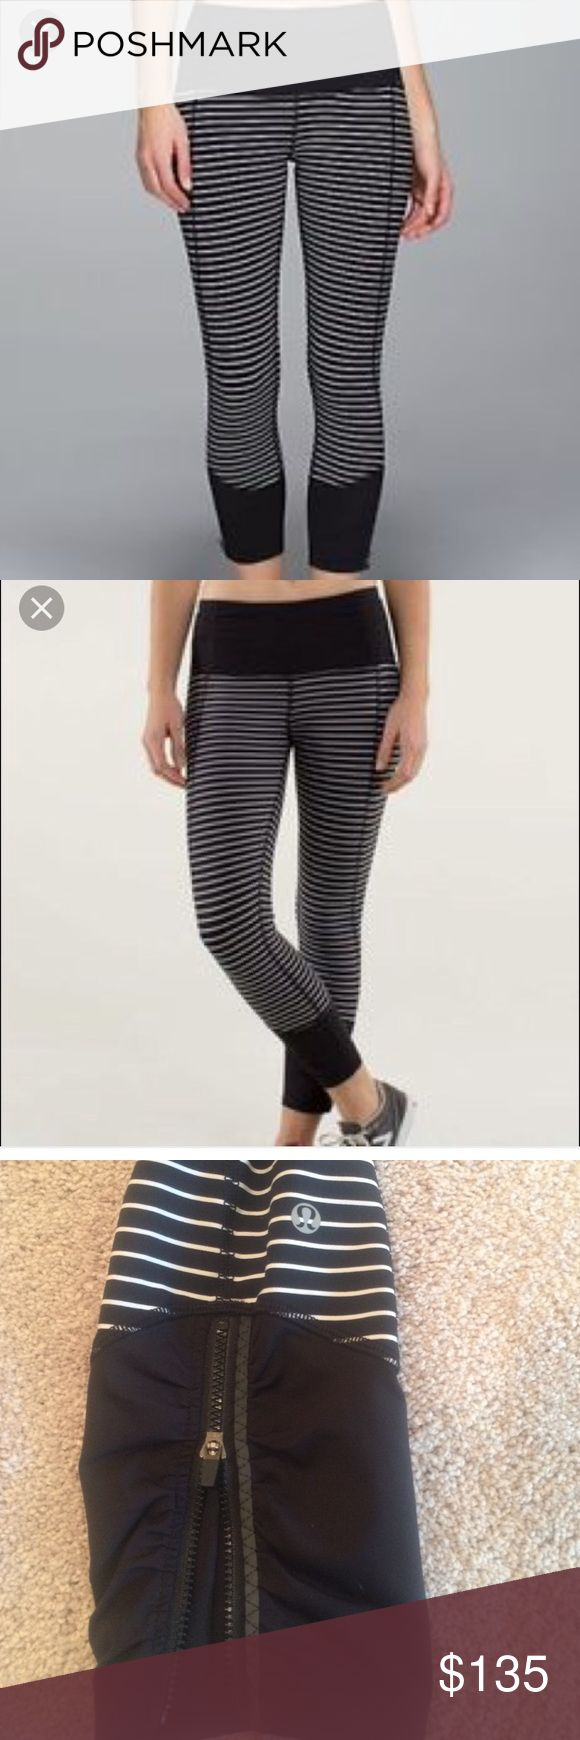 Lululemon runday racer crop pants Lululemon Runday Racer cropped pants. Black and white stripes with black waistband and black at the bottom. Features zippers and reflective material at the bottoms. Two inner pockets in front waistband. Zippered pocket in back. These have been worn twice and are in excellent, like new condition. Sold out everywhere. Very hard to find! lululemon athletica Pants Ankle & Cropped